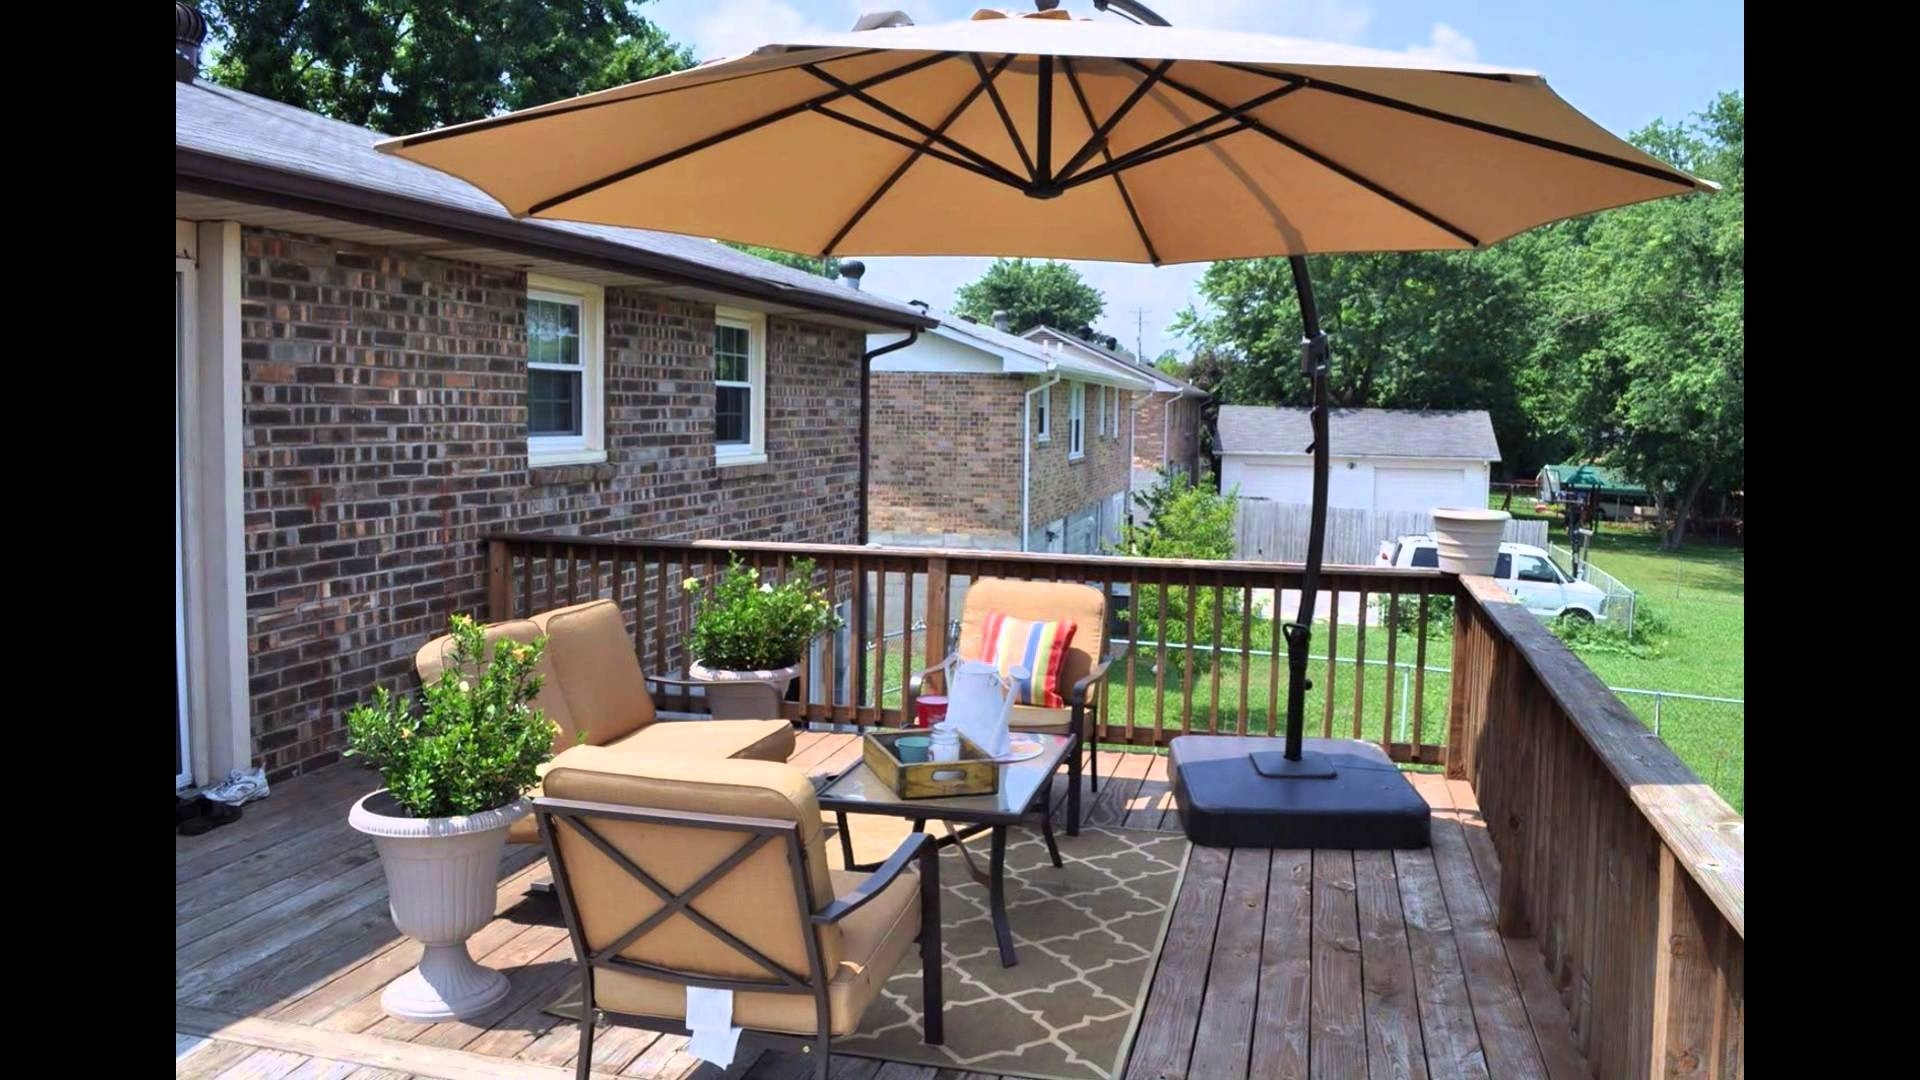 2019 Lowes Patio Furniture – Youtube Within Lowes Patio Umbrellas (View 20 of 20)